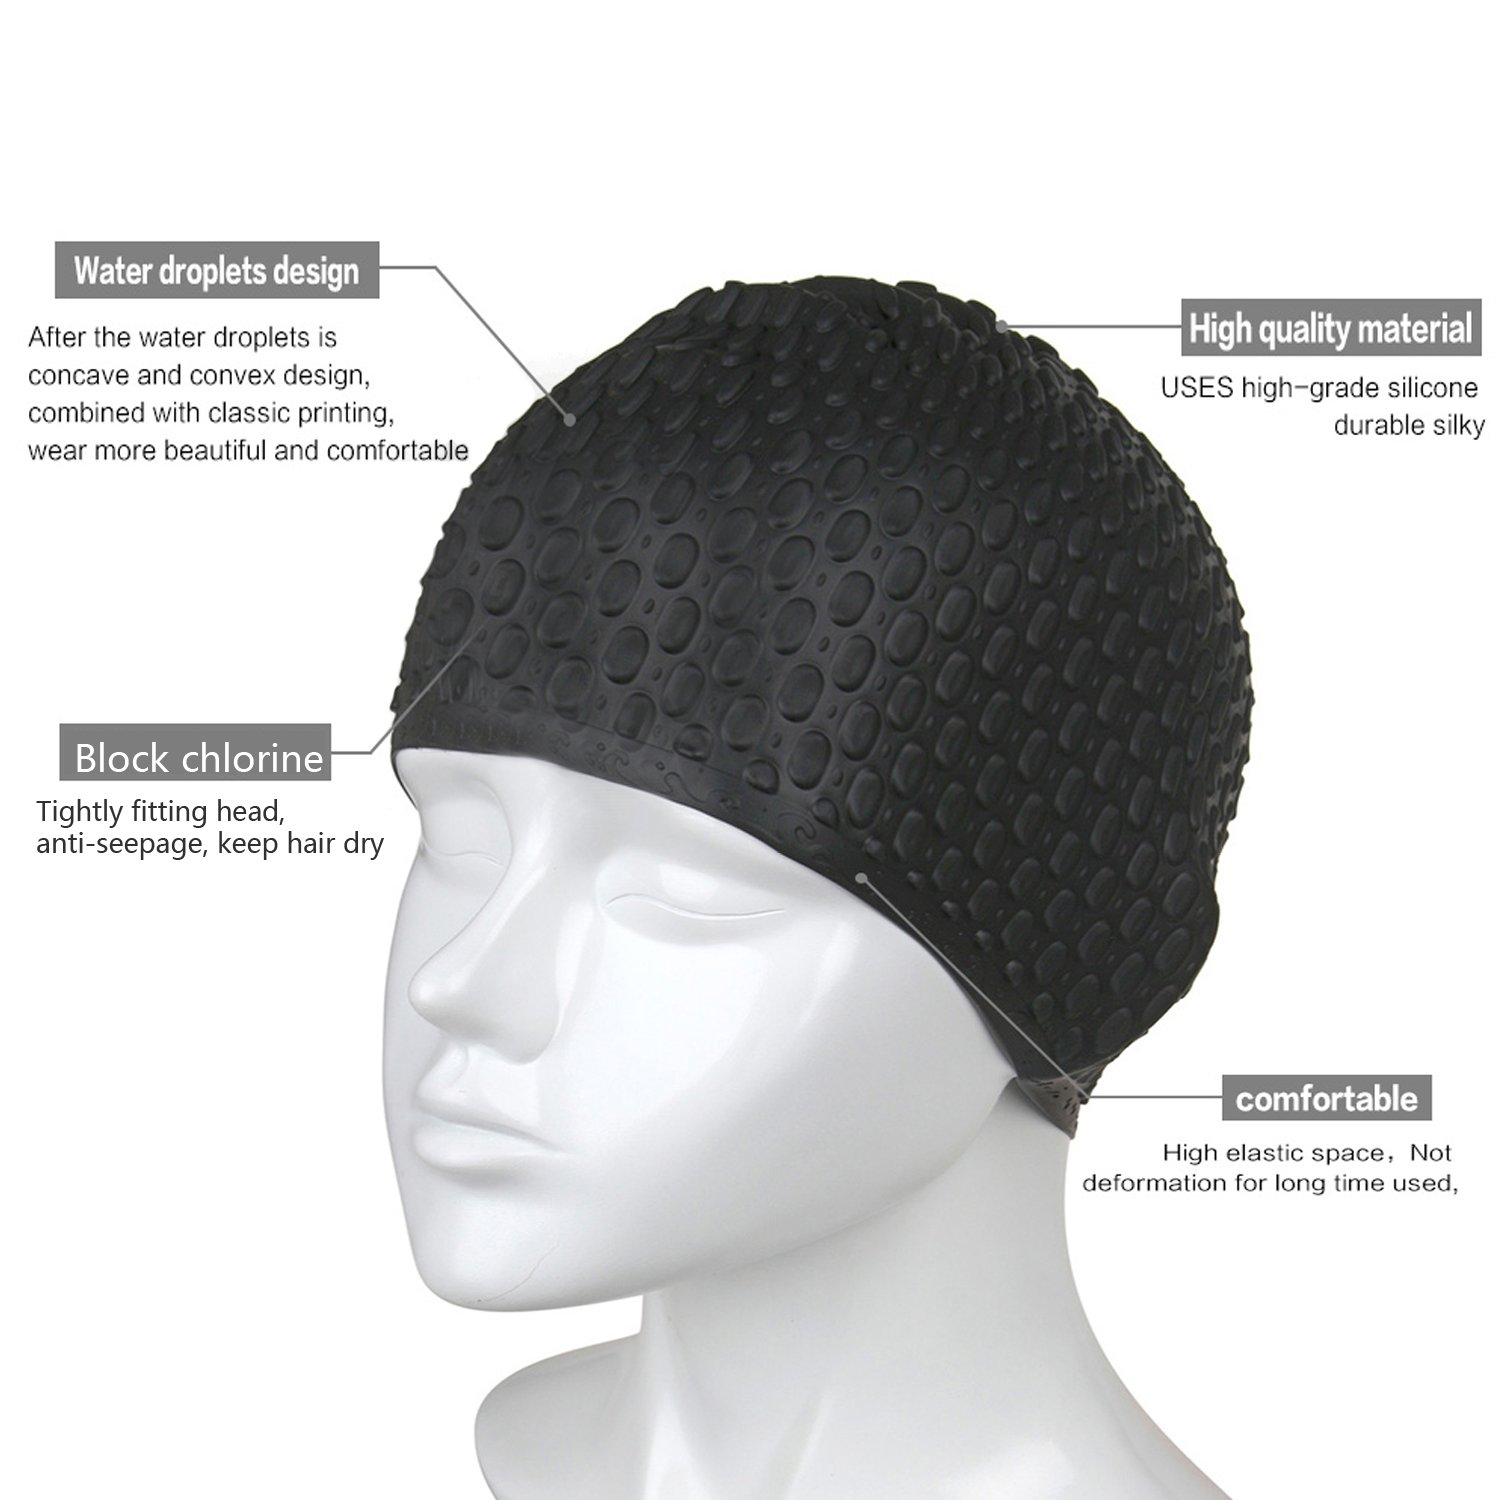 Peacoco Silicone Swim Cap for Women Kids Girls Men and Adult Ear Wrap Swim Hat Keeps Hair Dry Swimming Cap for Long Hair